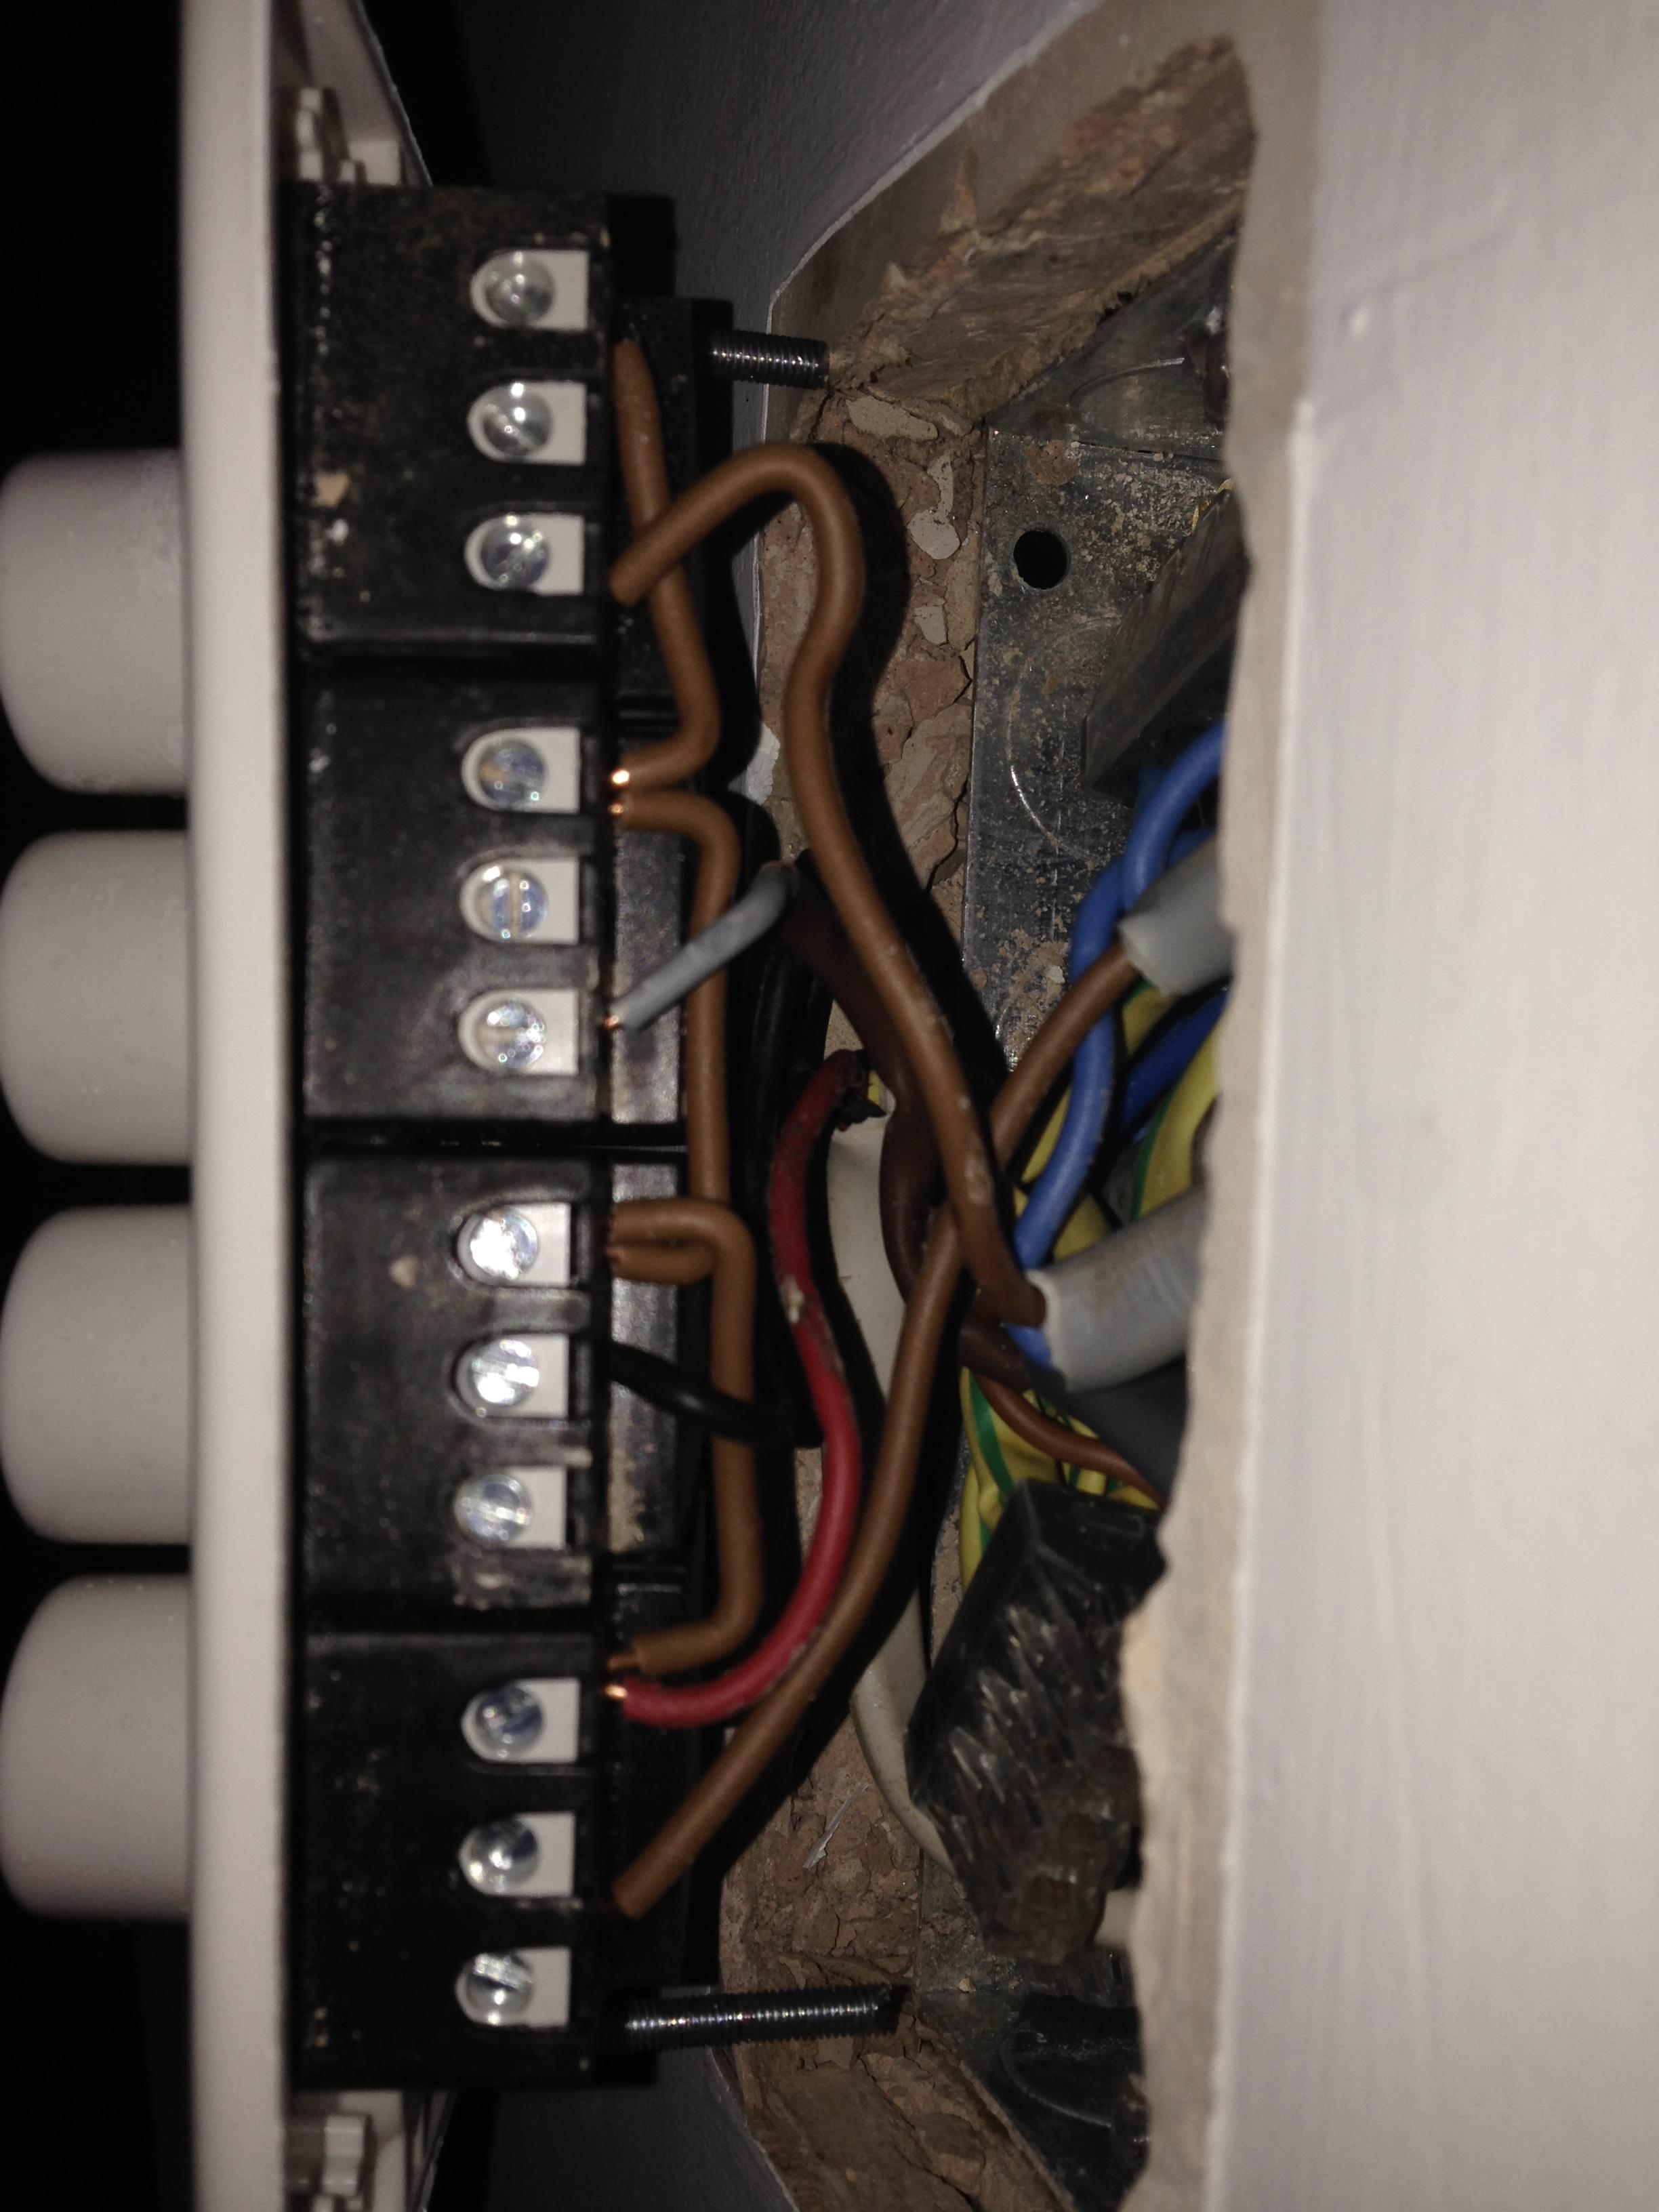 2 way wiring diagram uk sharepoint 2010 site how to wire a ceiling rose that has 7 wires diynot forums